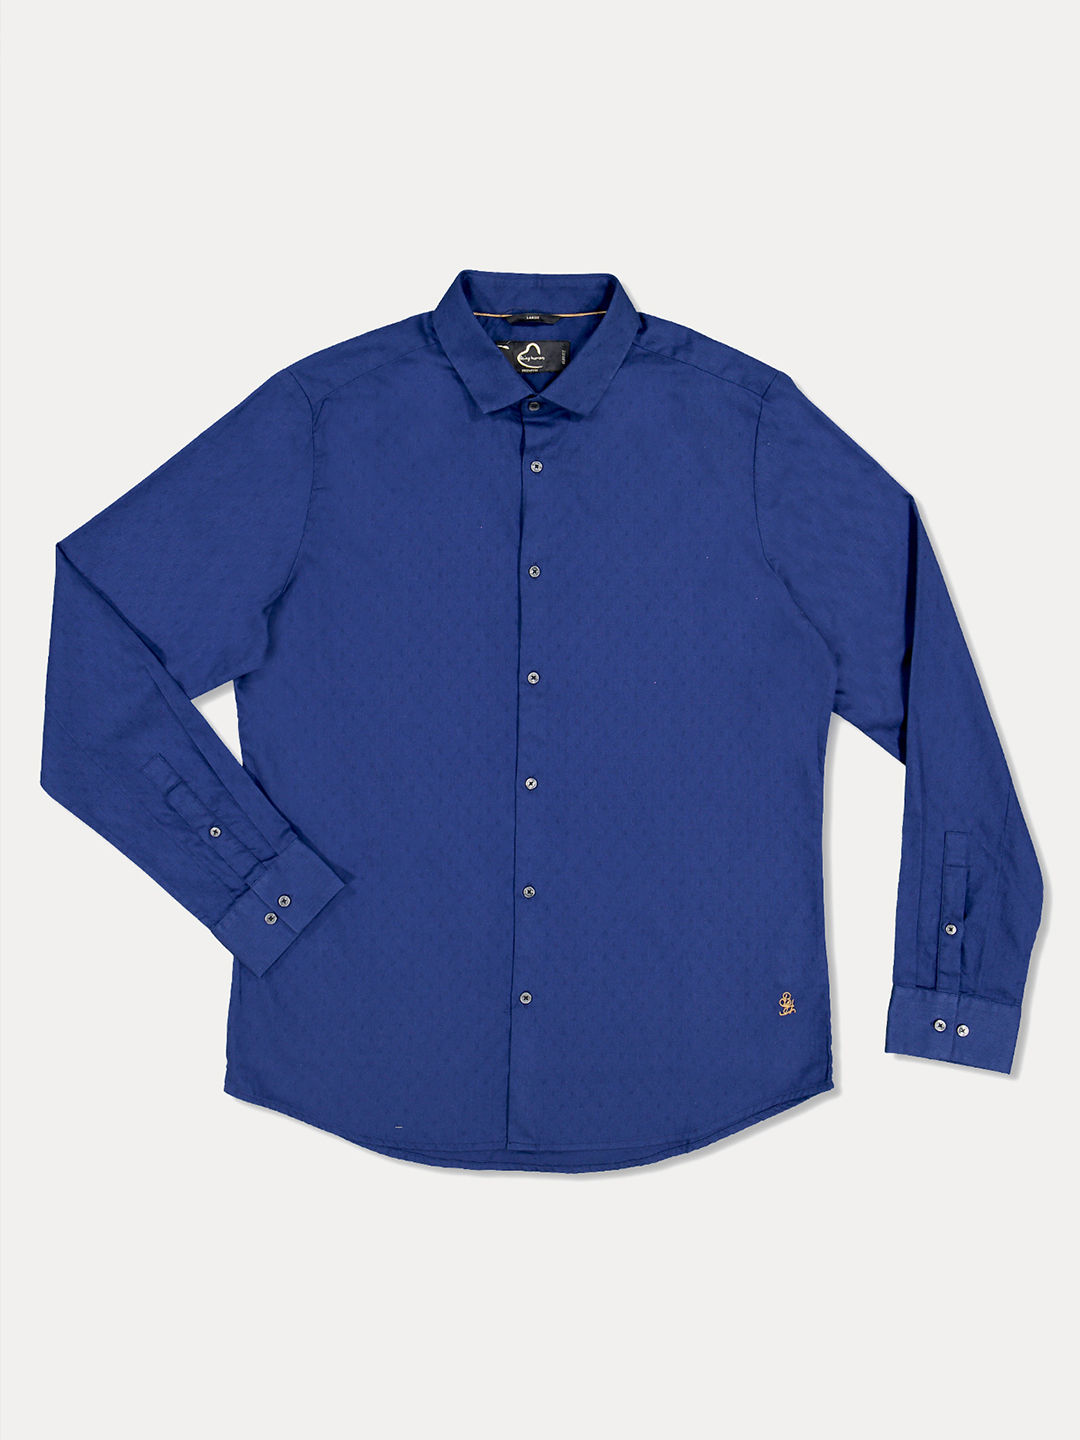 INK BLUE SOLID CASUAL SHIRT